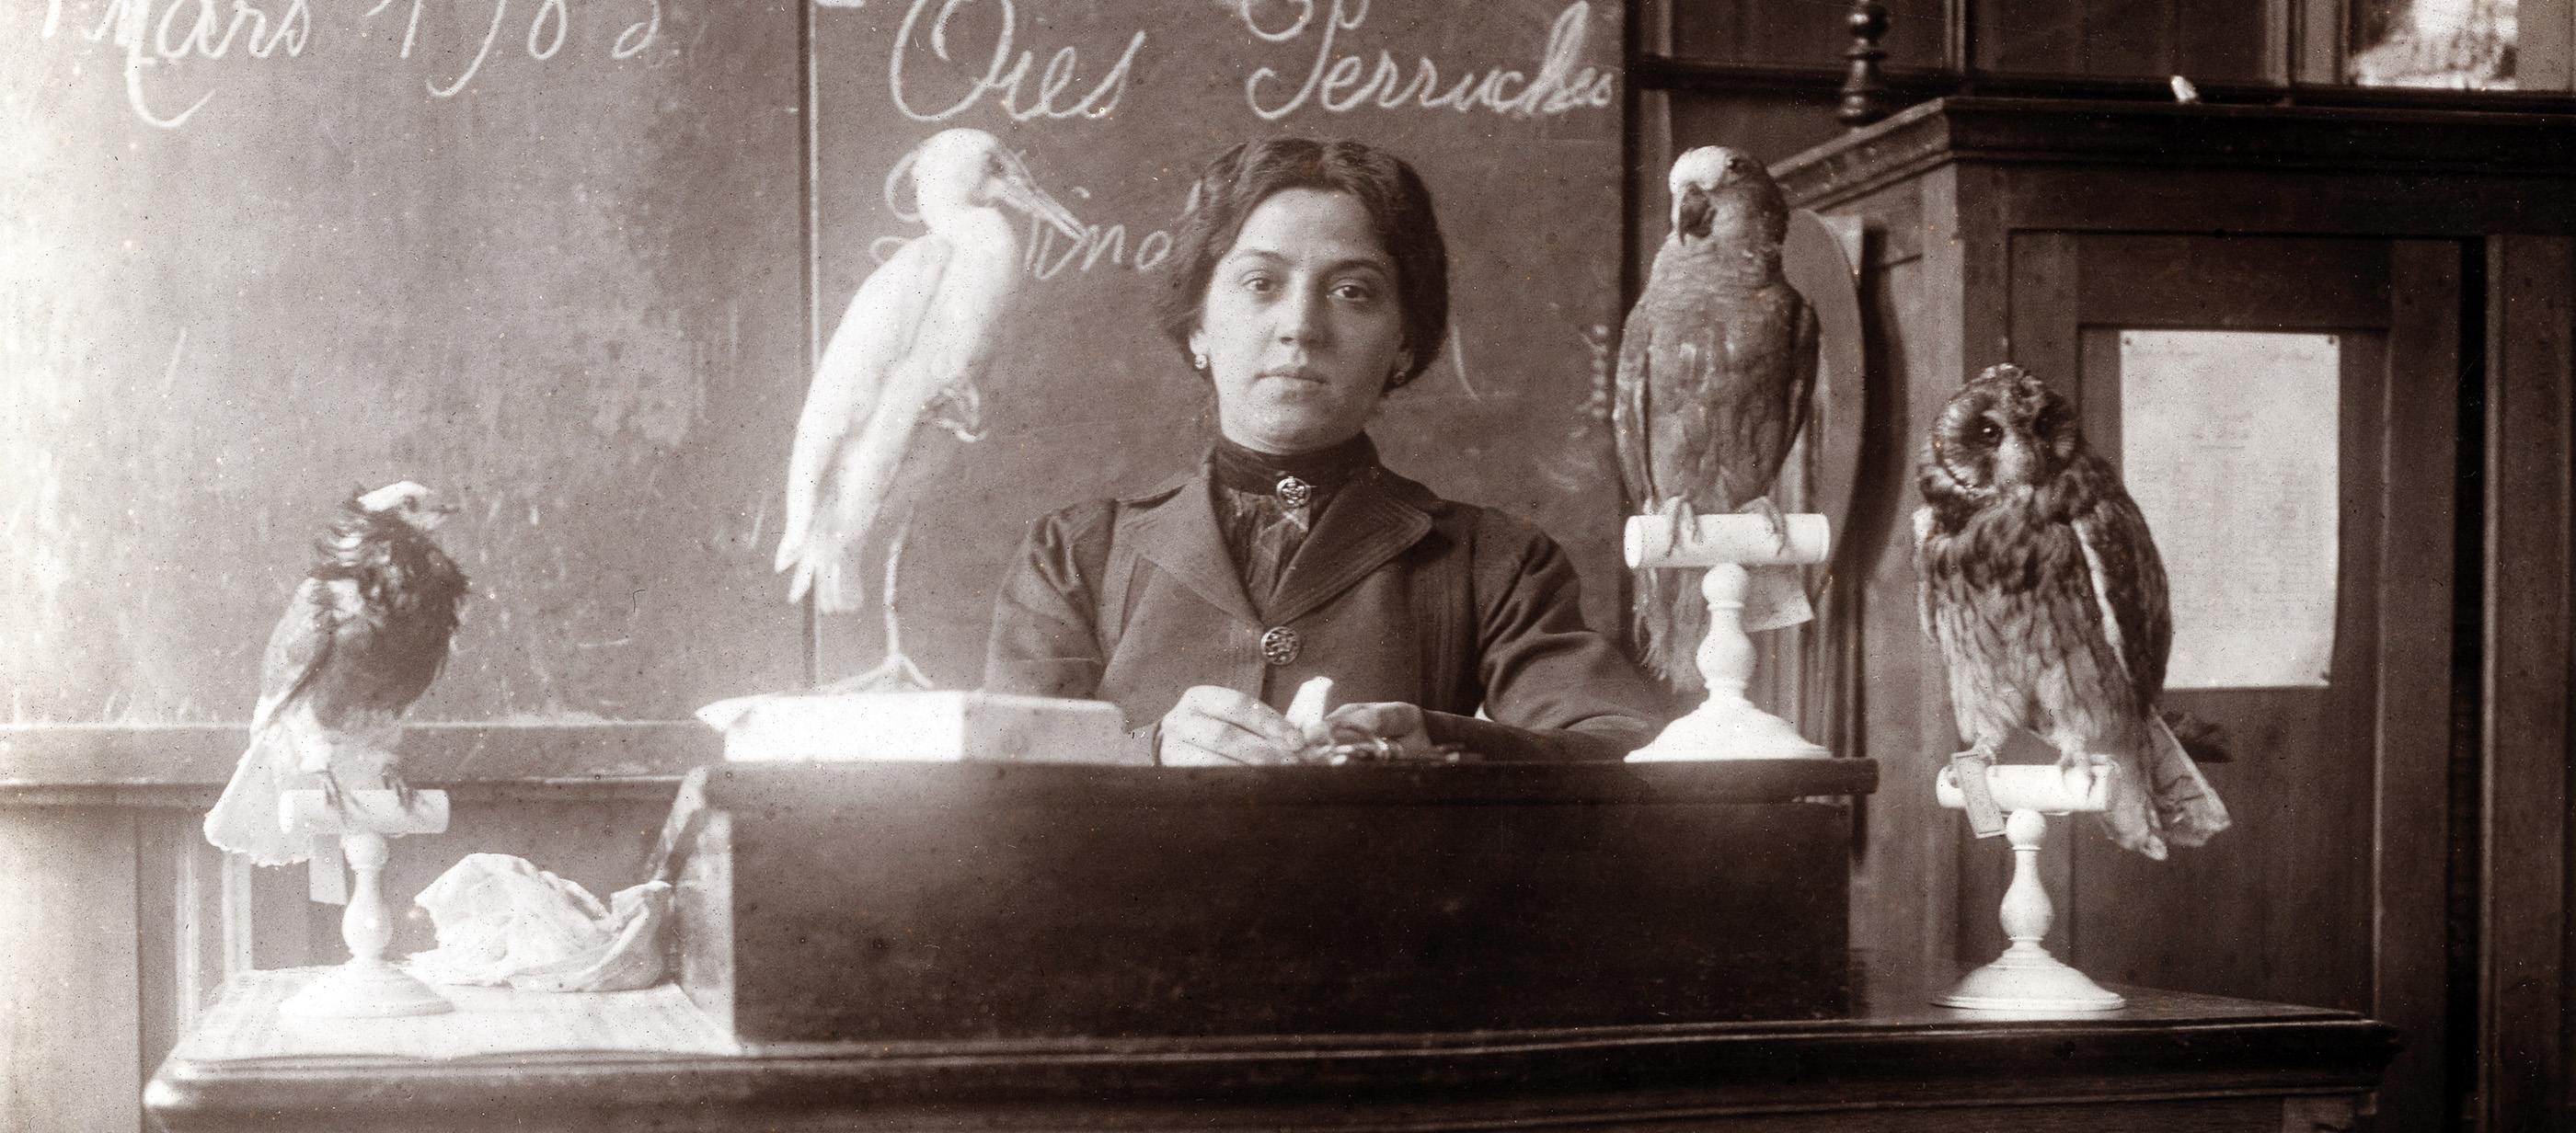 French teacher lectures about birds, 1903.